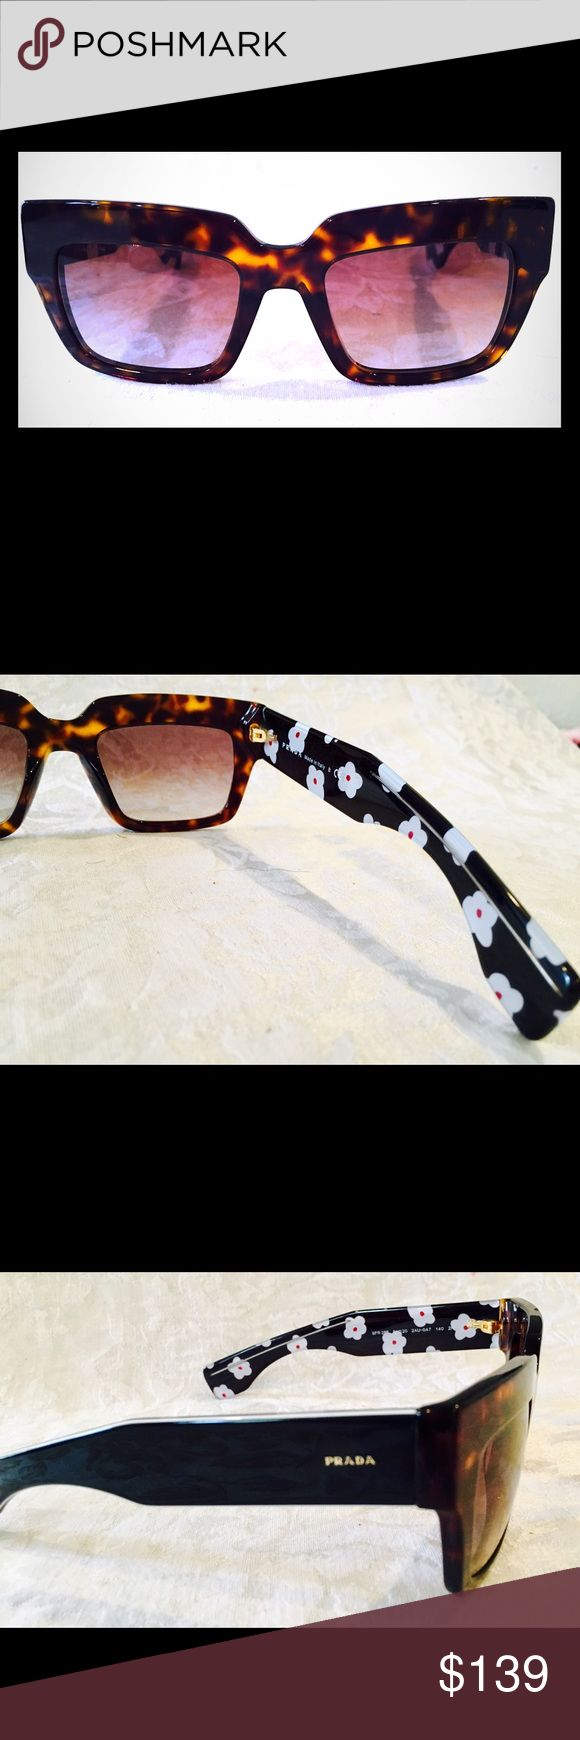 Prada women's sunglasses...NEW!! Tortoiseshell frames on the outside, white daisies on the inside of the arms. Great frame shape, sits comfortably on the face. Looks and feels like a pair of sunglasses that Audrey Hepburn would have worn while out and about. NEW!! Prada Accessories Sunglasses